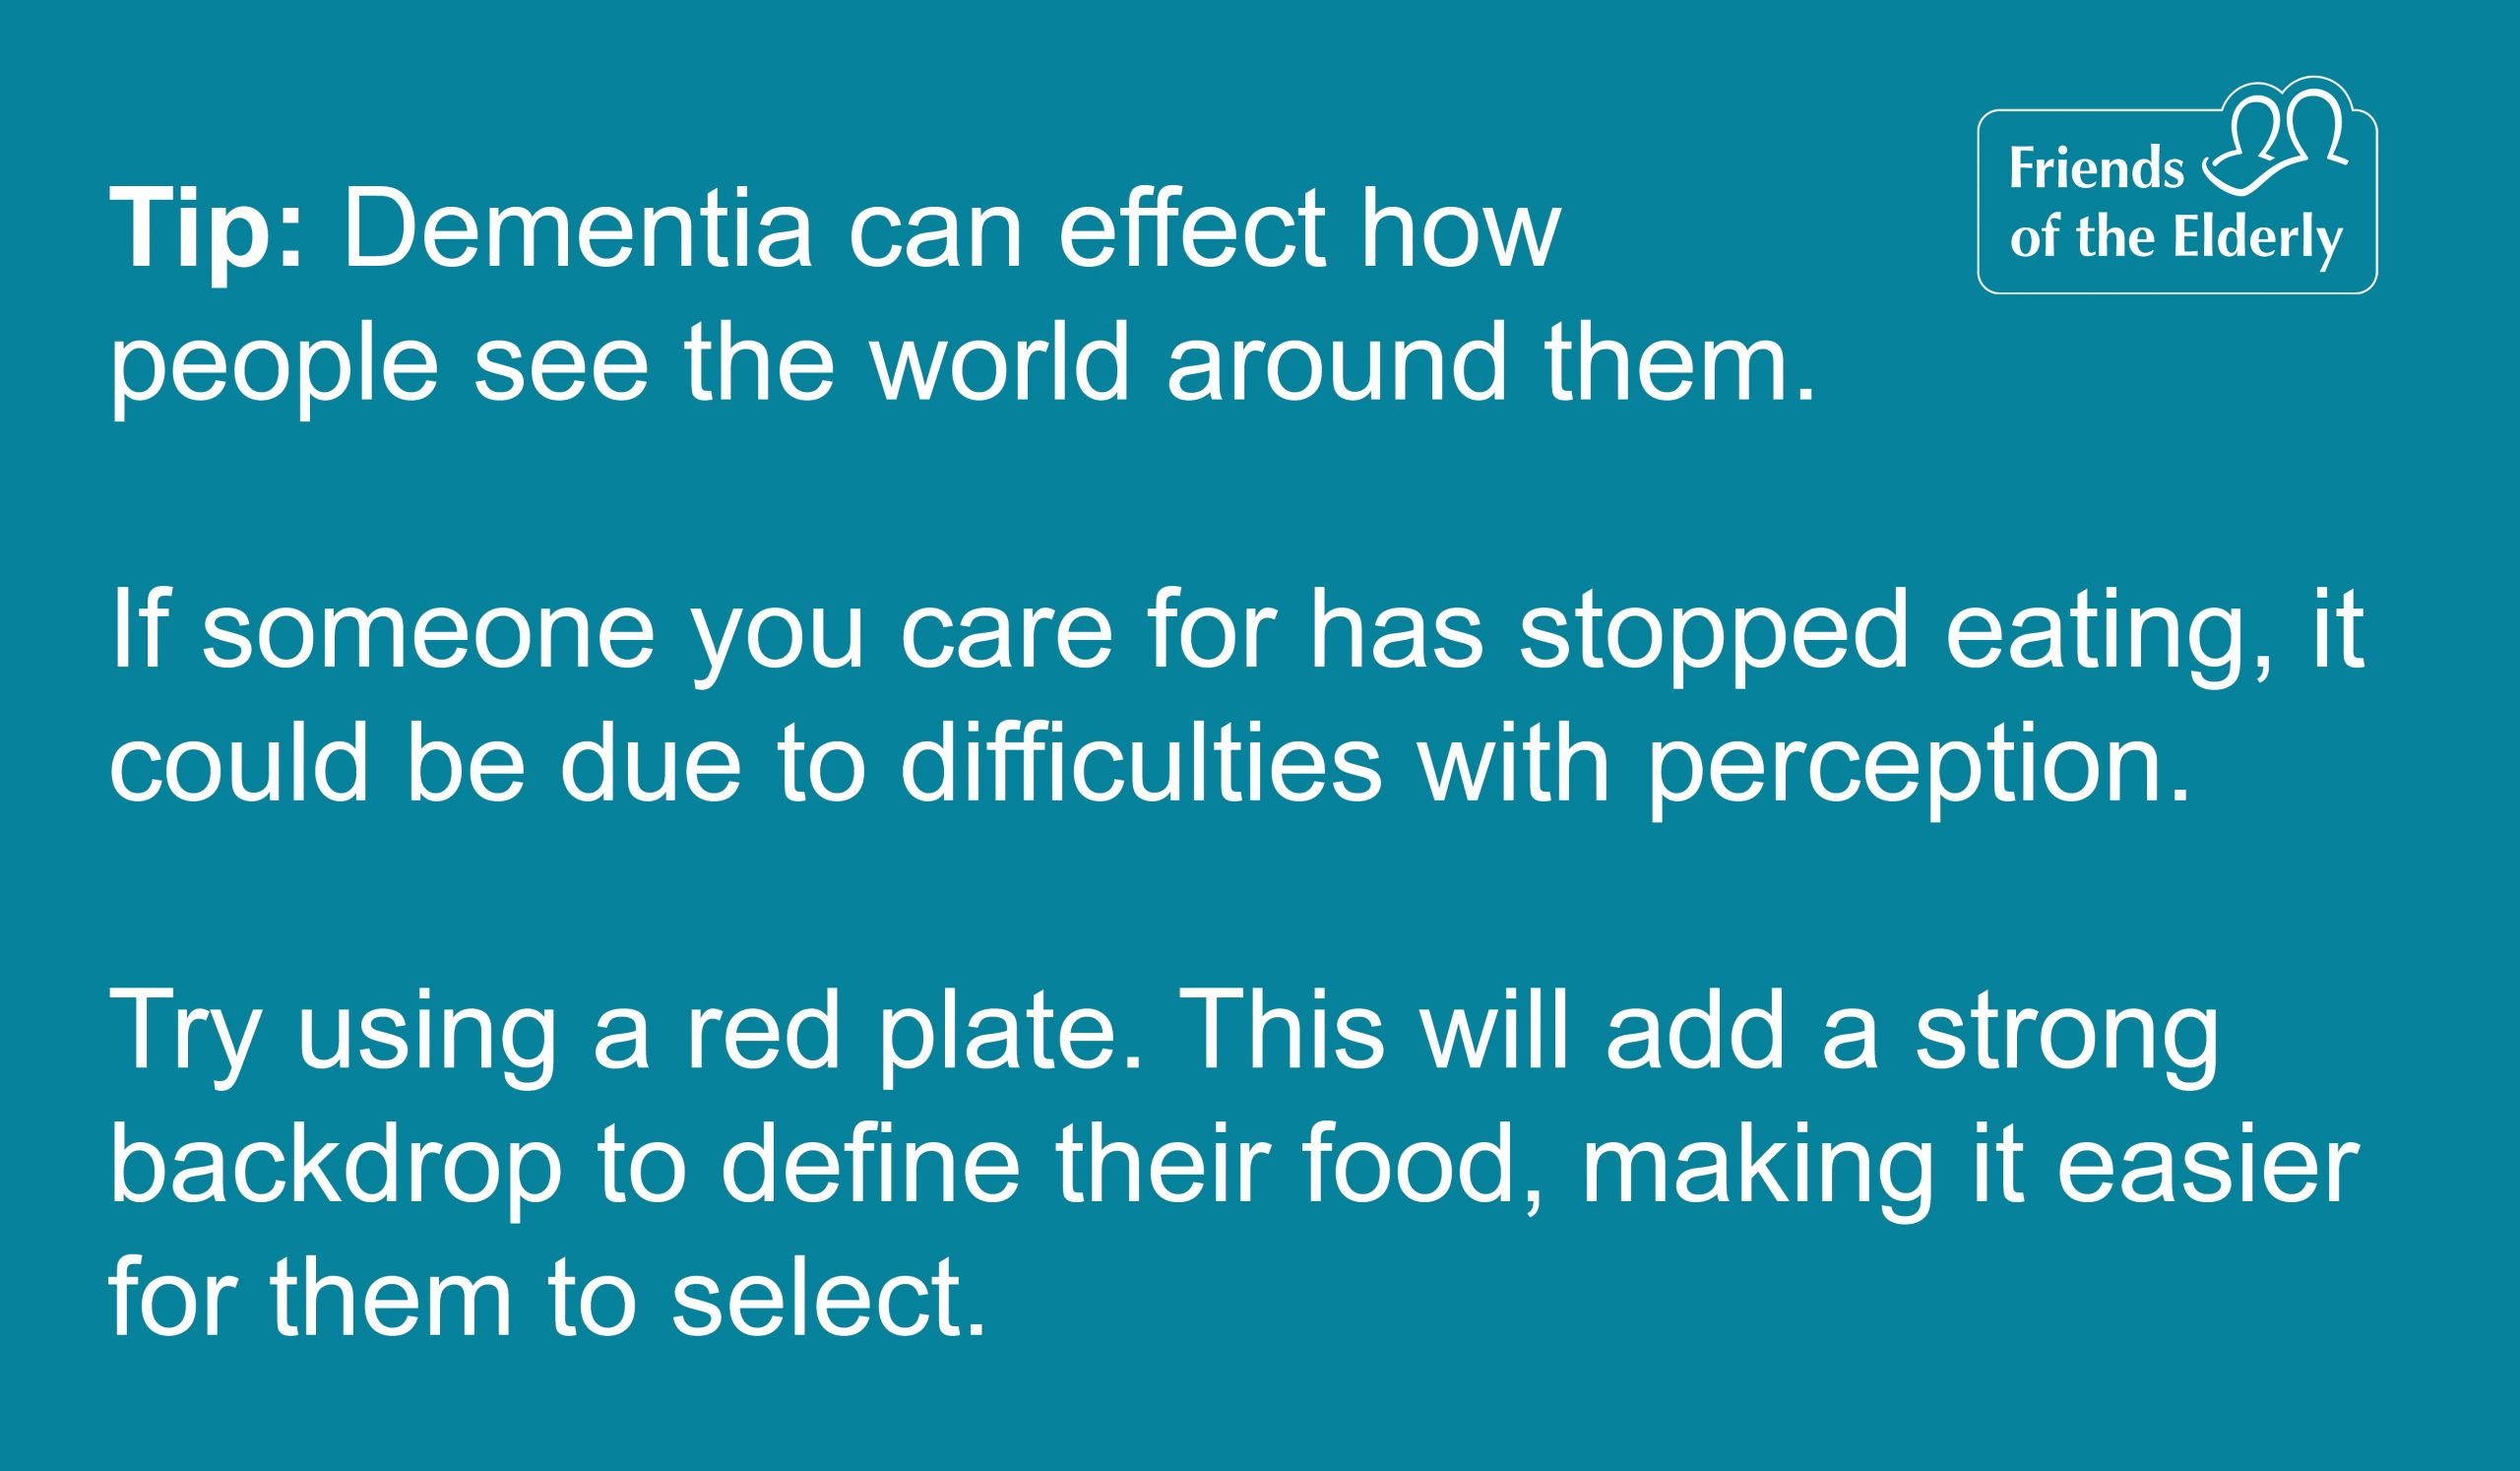 Tip 4: Issues with eating. Dementia can effect how people see the world around them. If someone you care for has stopped eating, it could be due to difficulties with perception. Try using a red plate. This will add a strong backdrop to define their food, making it easier for them to select.